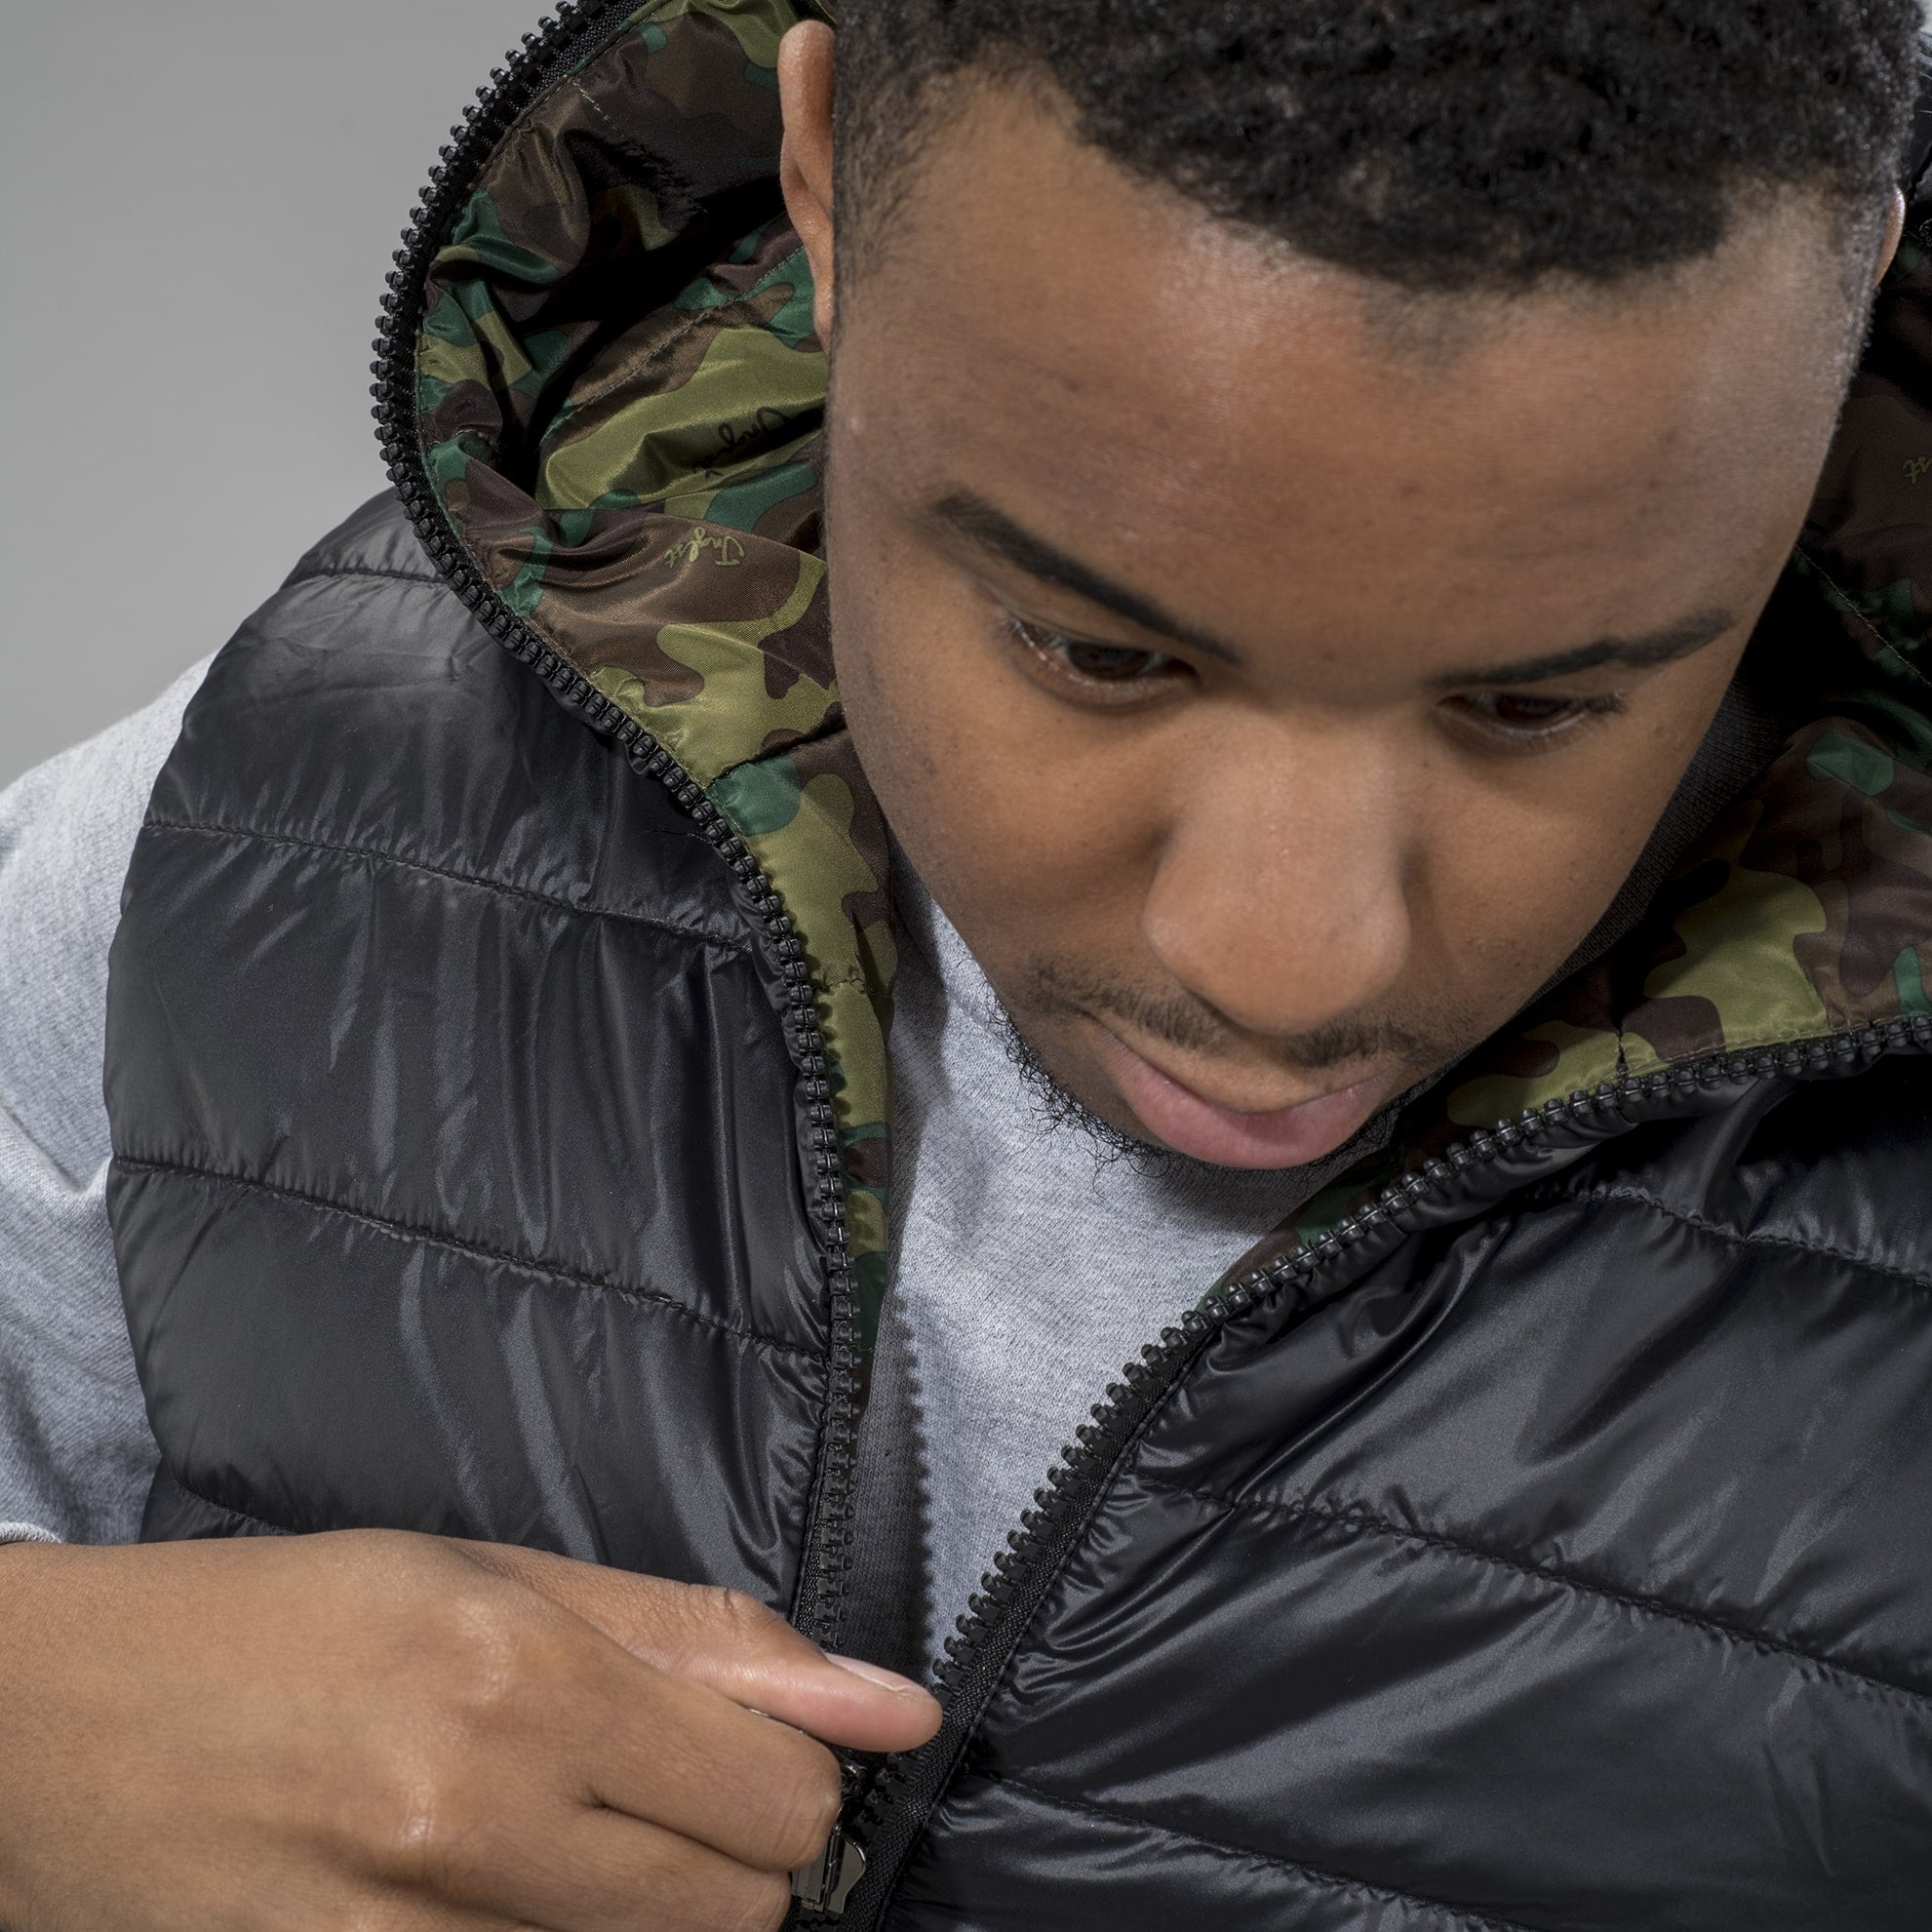 Model in Junglist Network's Camo Body Warmer